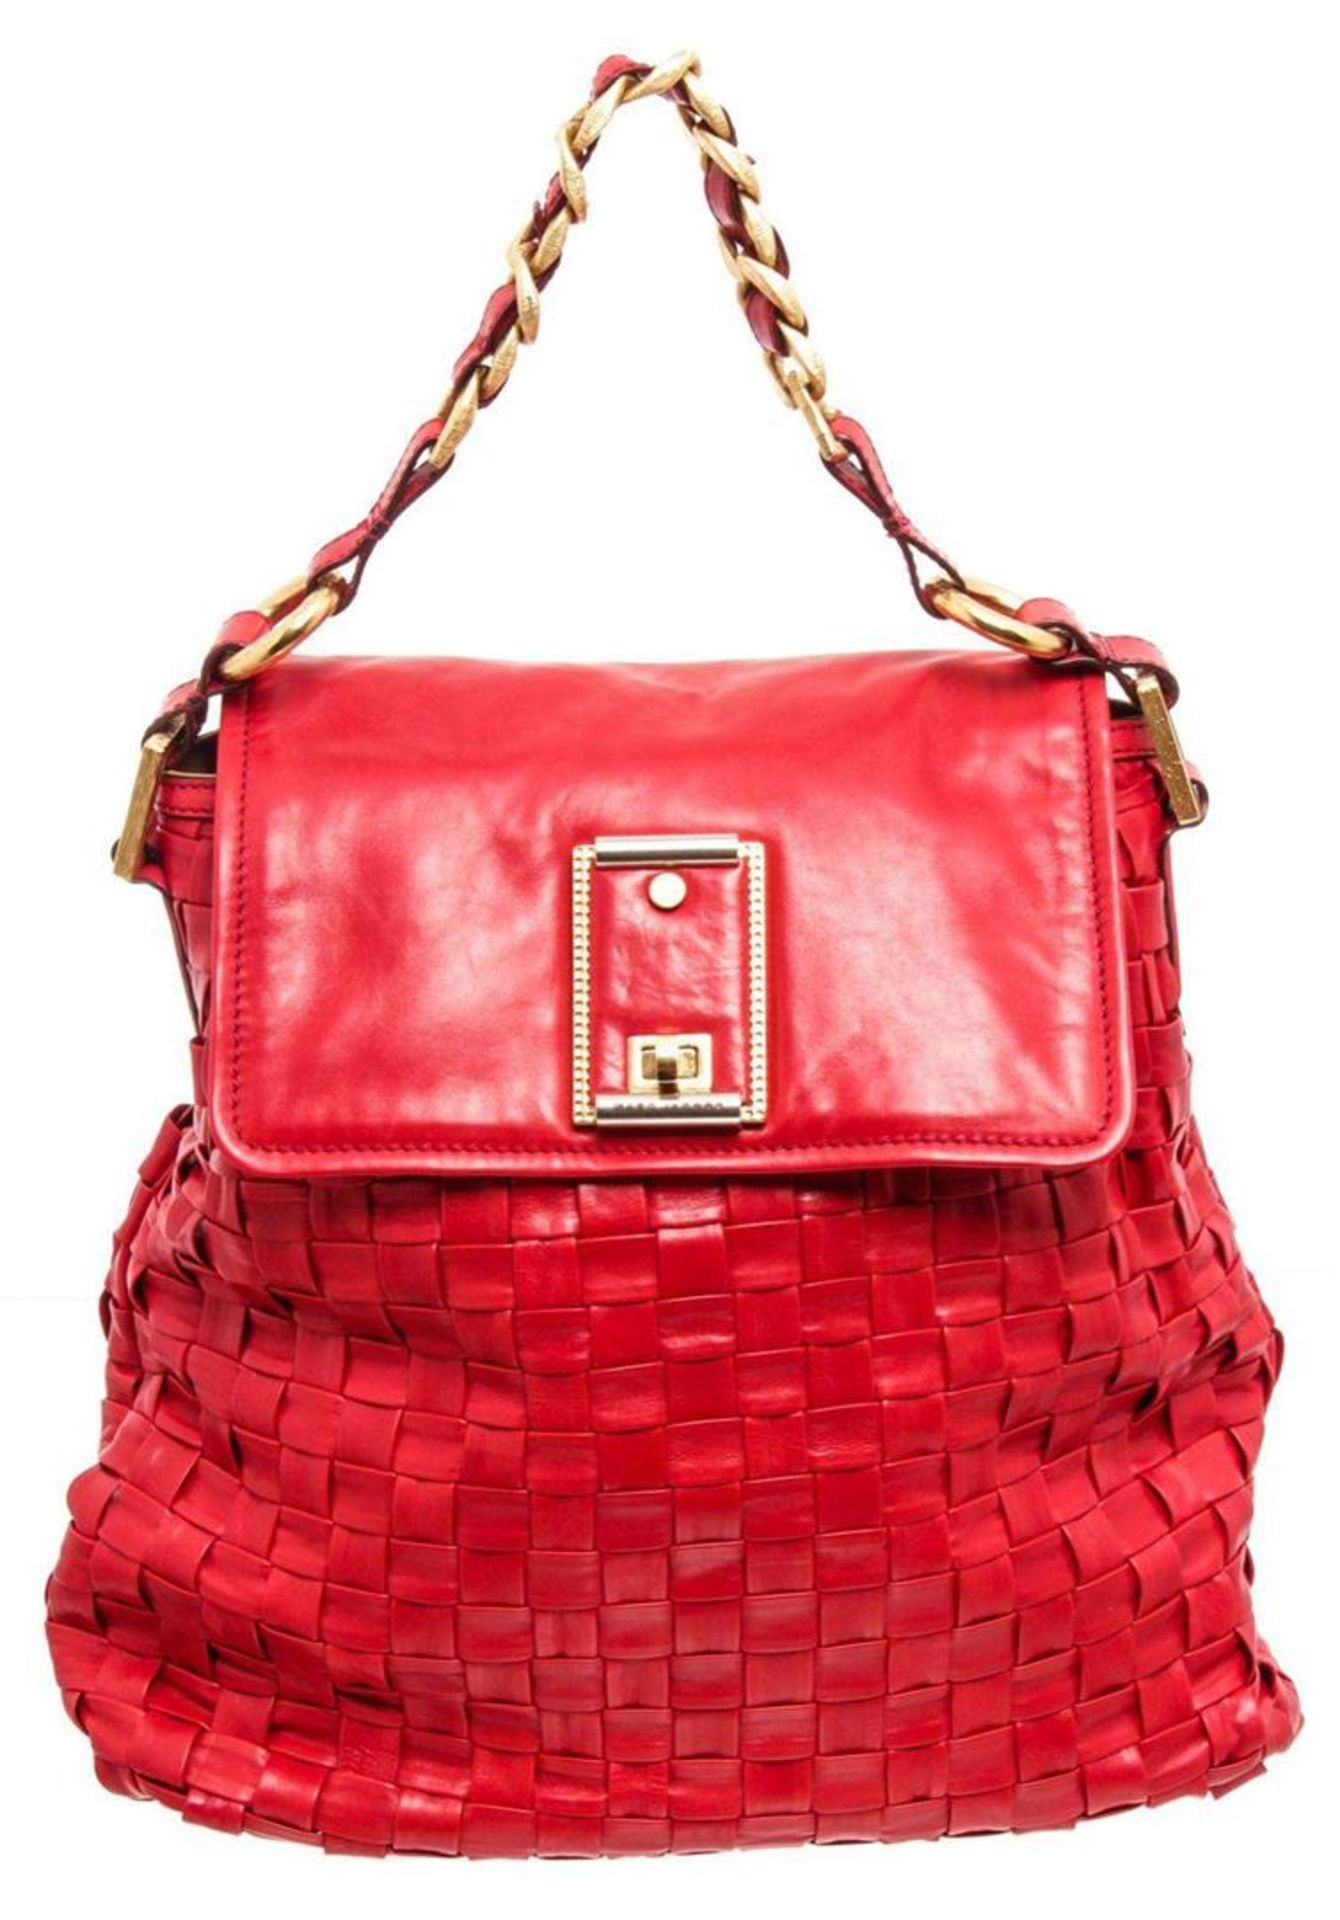 Marc Jacobs Red Leather Woven Hobo Shoulder Bag